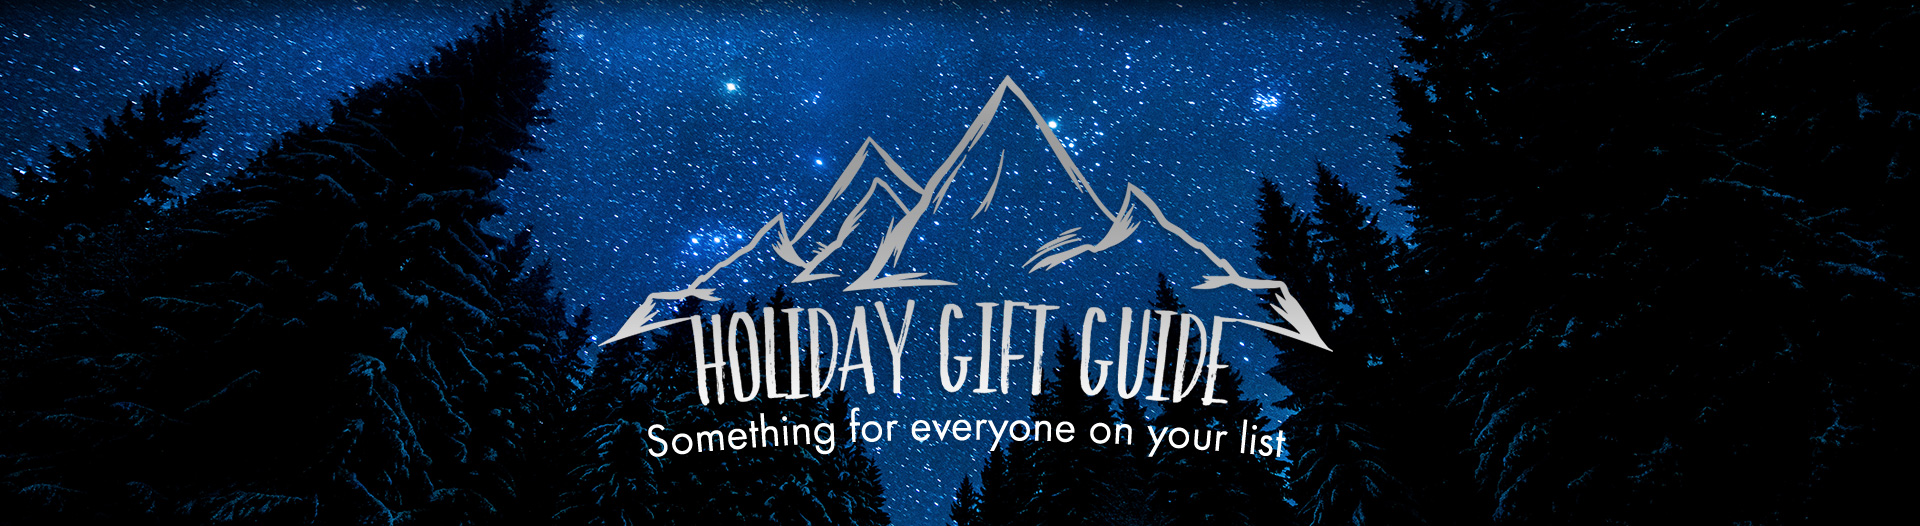 Holiday Gift Guide | Something for everyone on your list